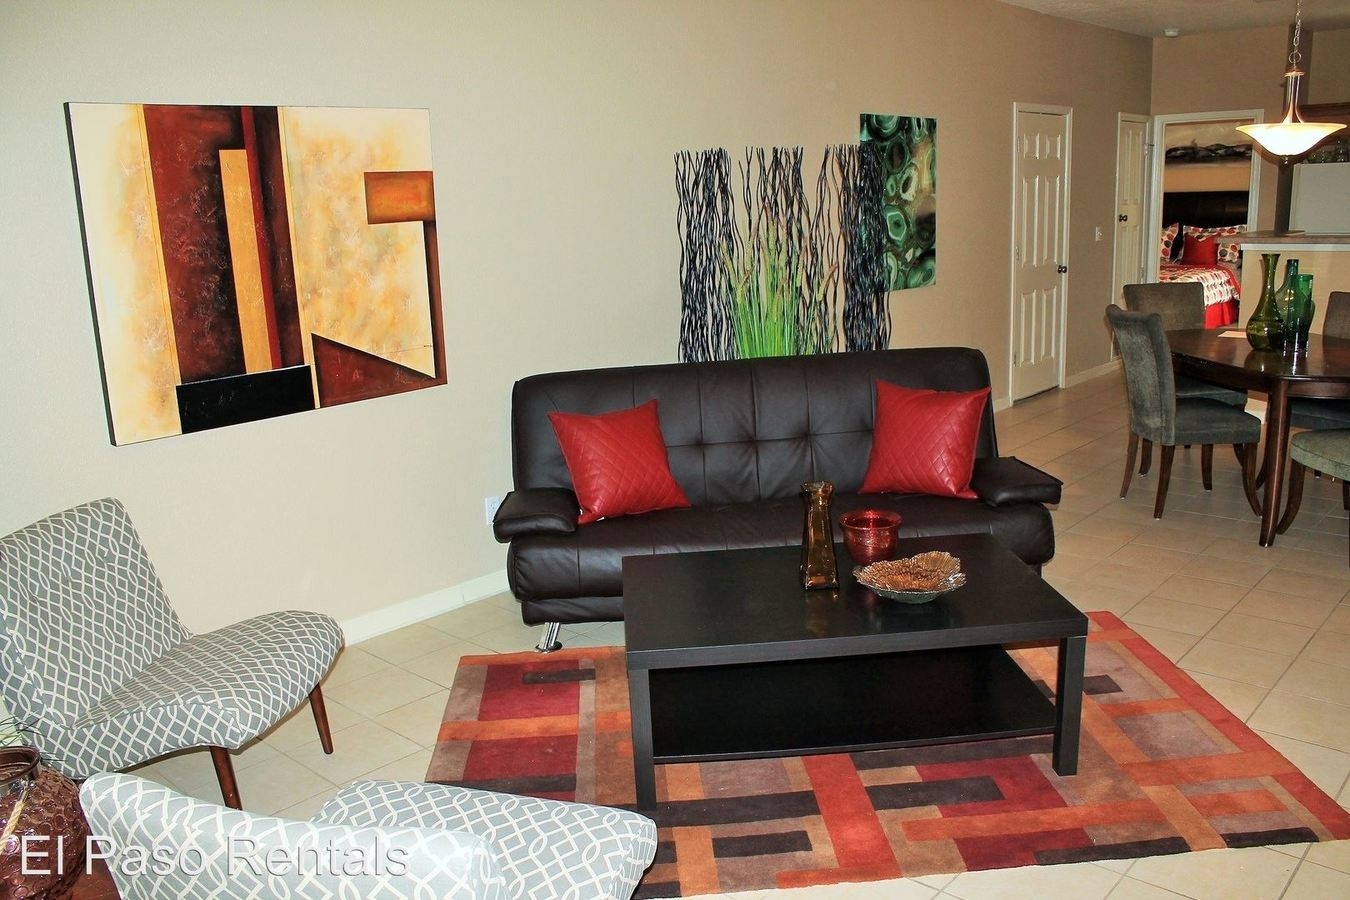 3 Bedrooms 2 Bathrooms Apartment for rent at 3150 N. Yarbrough Drive in El Paso, TX